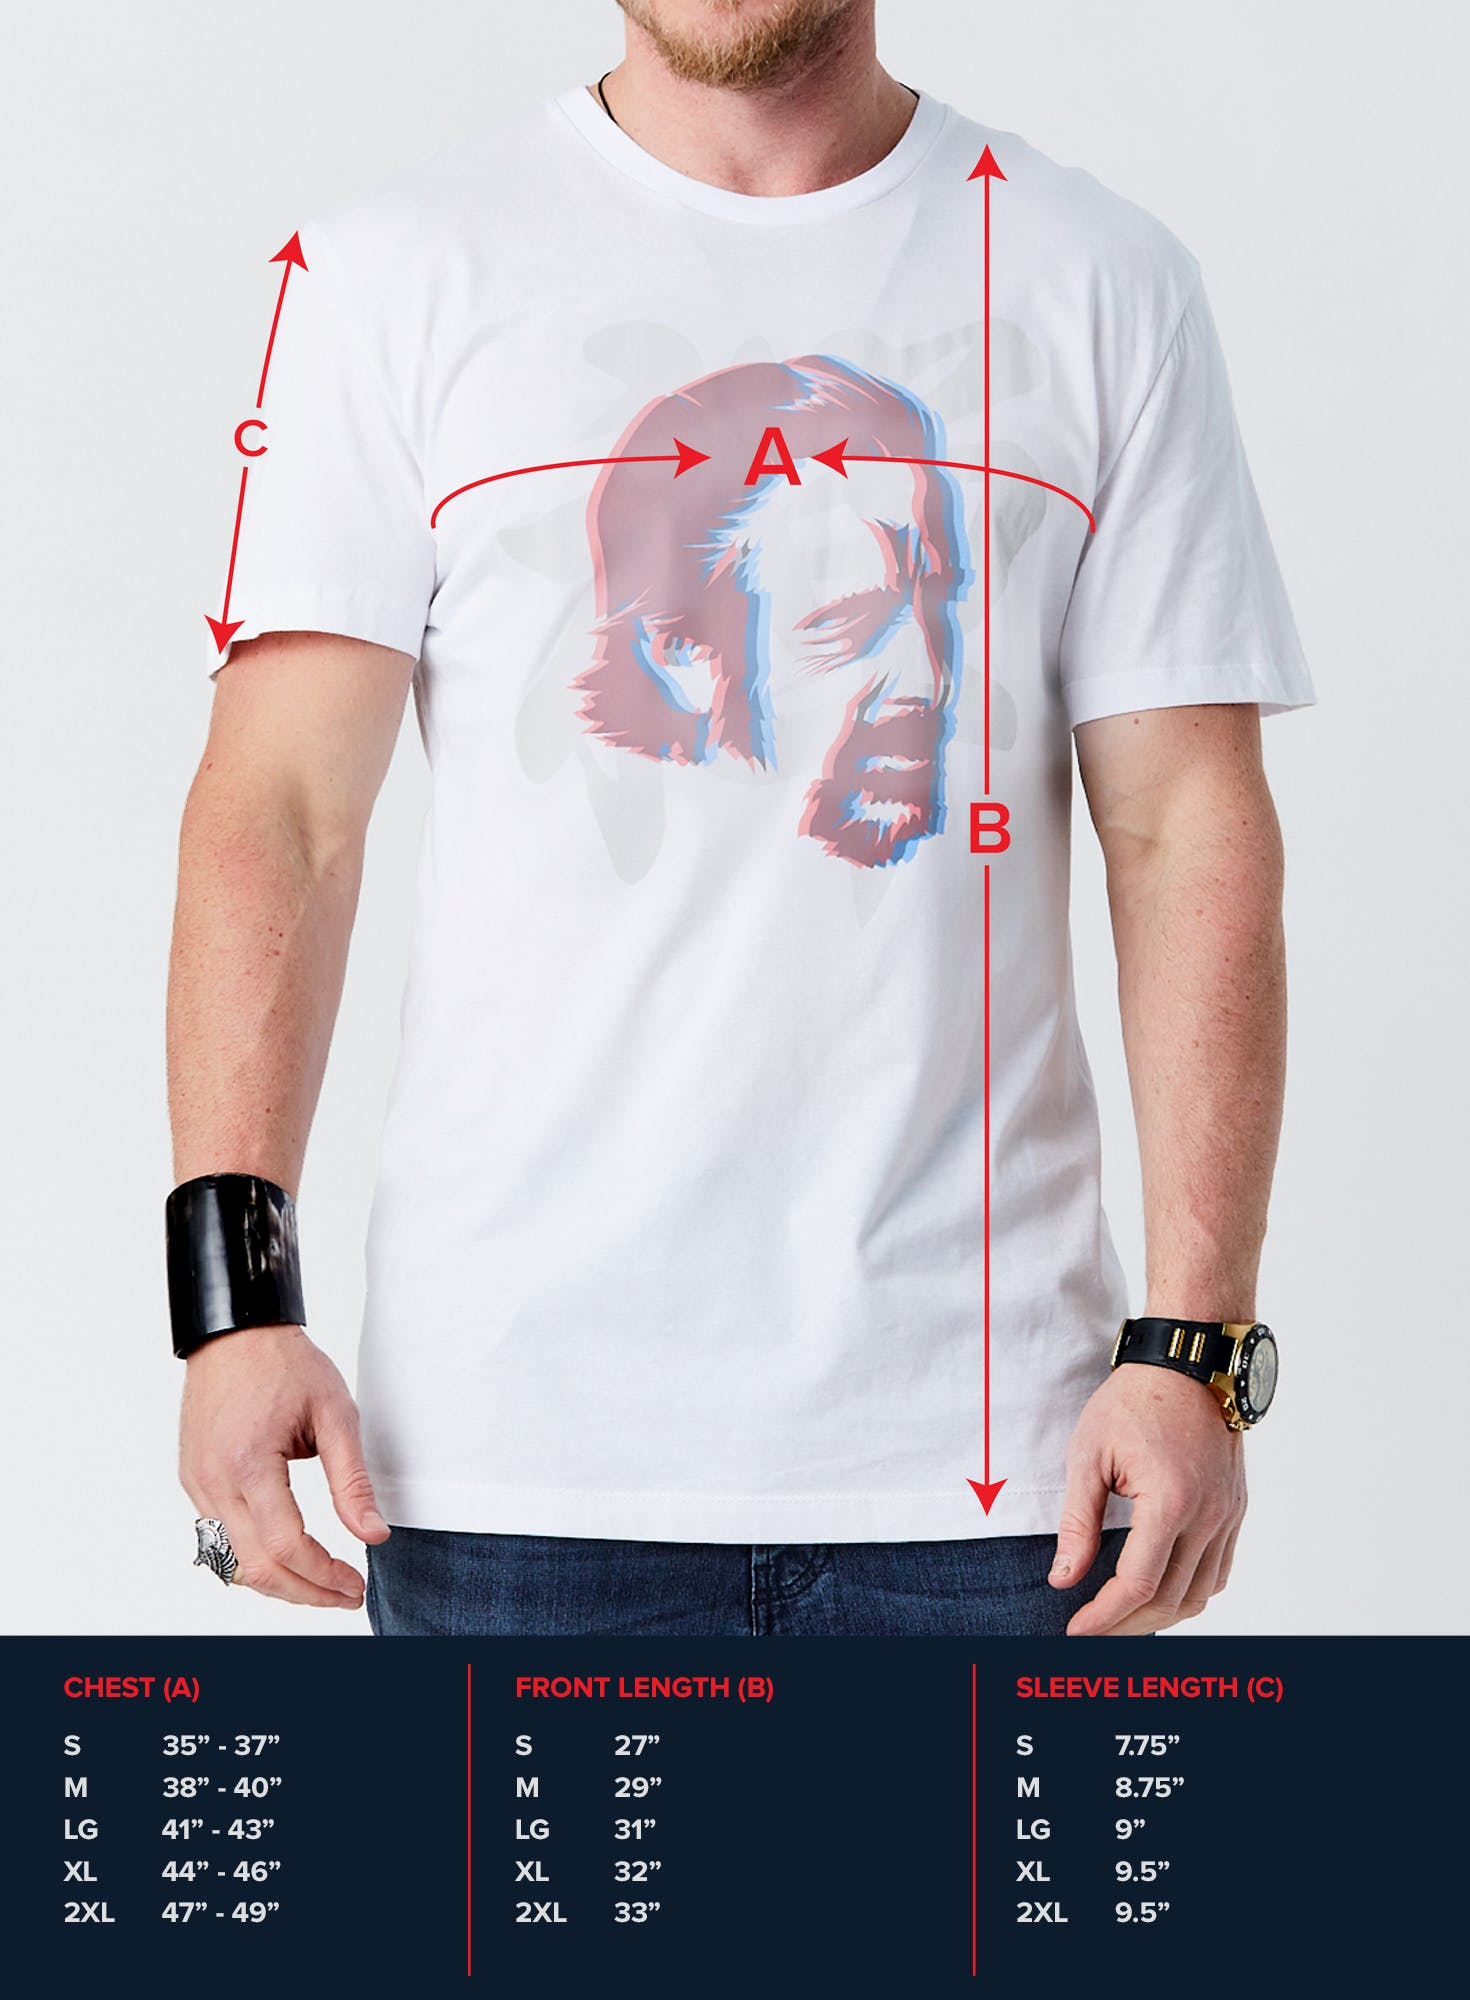 Alan Watts T-Shirt Bonus Image